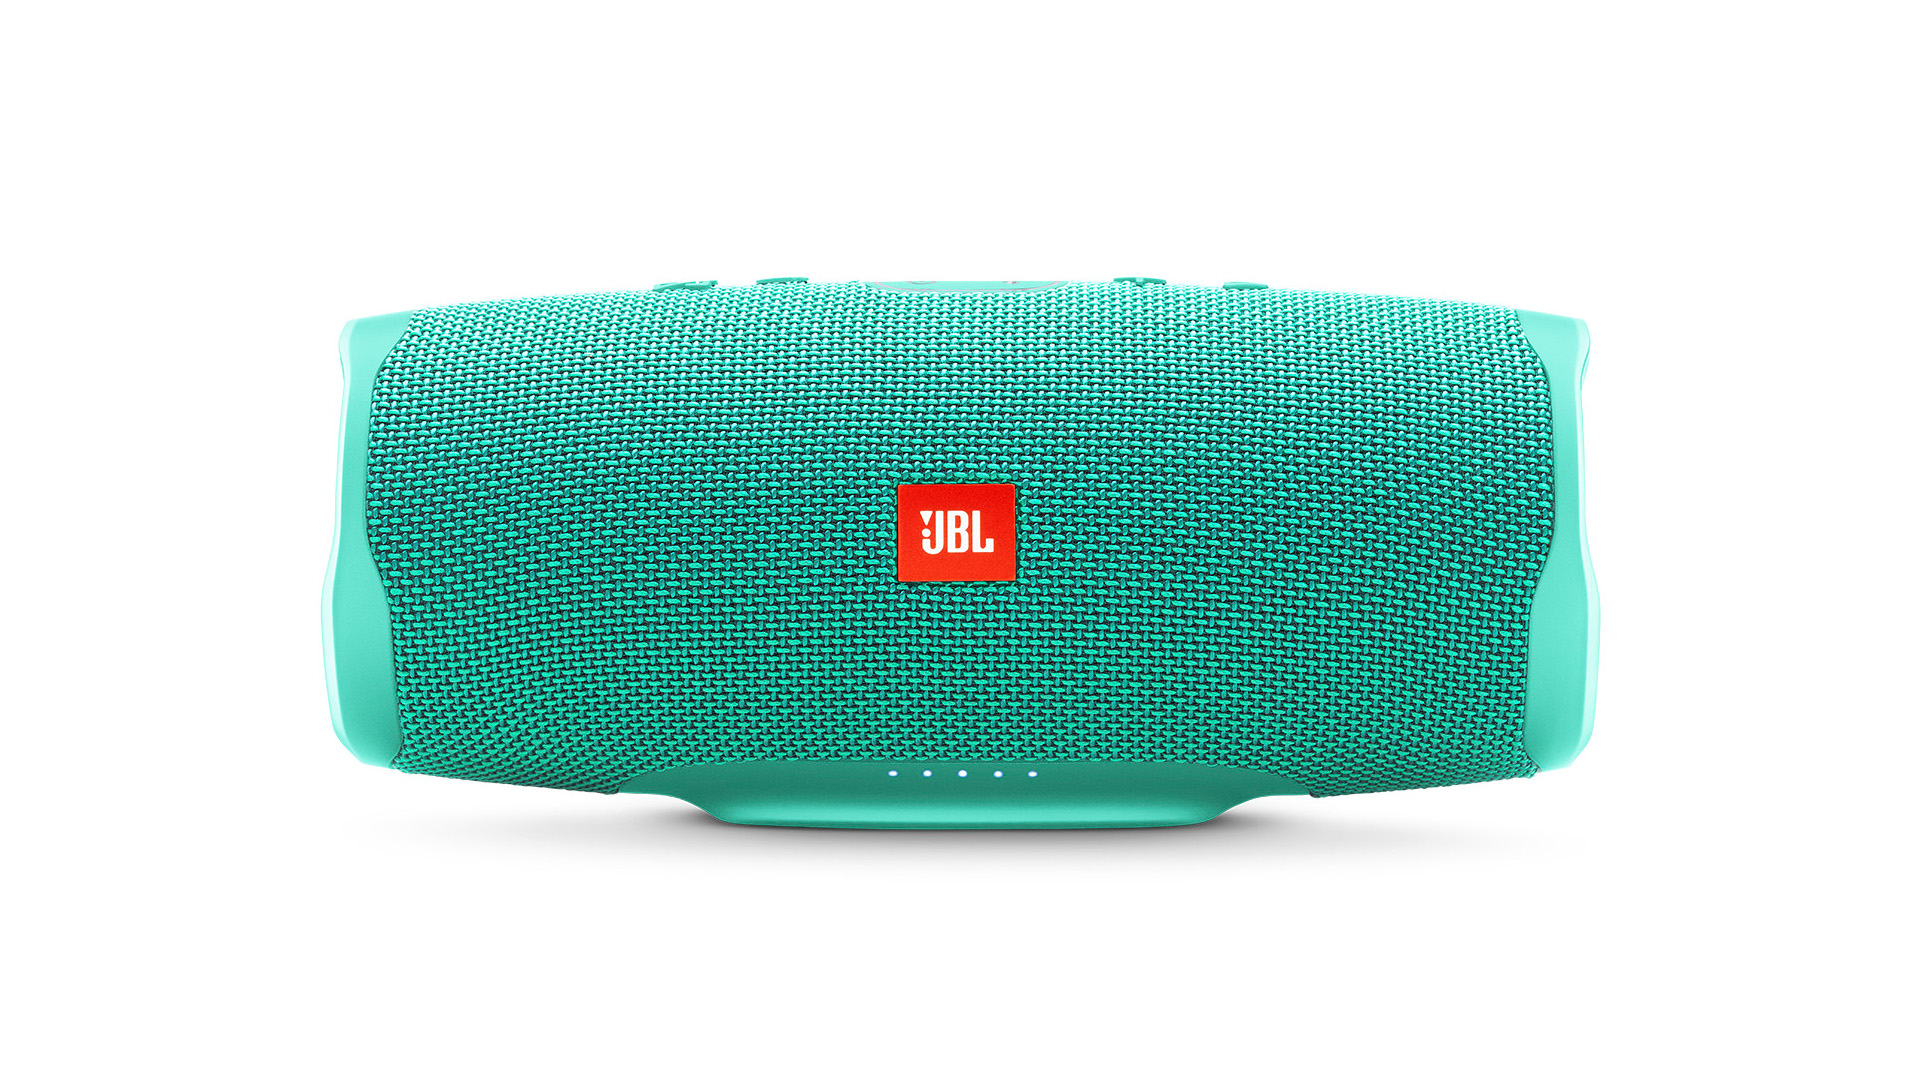 Best JBL Bluetooth speakers: Which speaker should you buy? | What Hi-Fi?